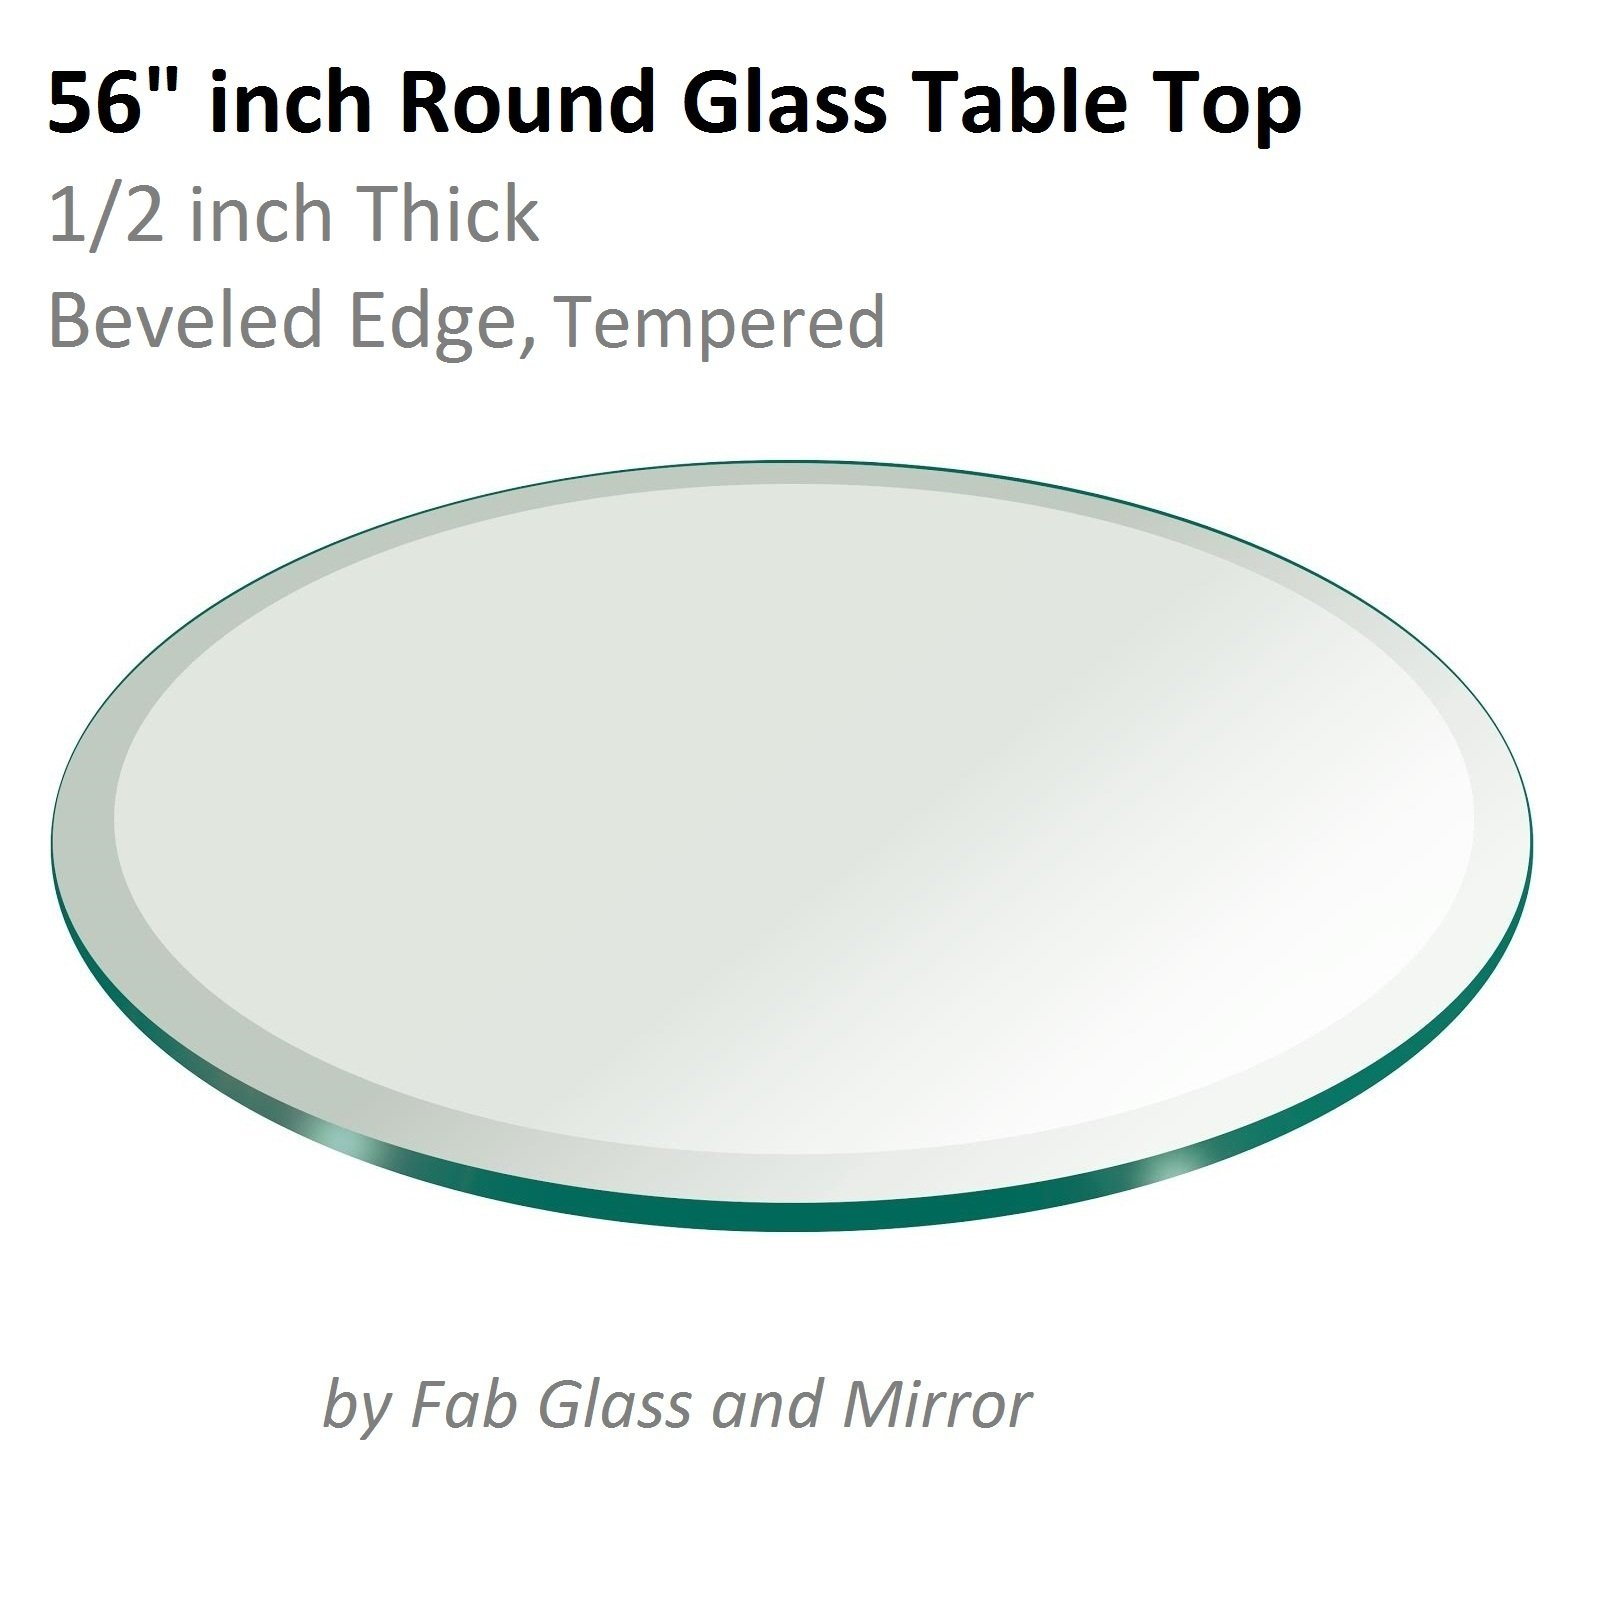 56'' Inch Round Glass Table Top 1/2'' Thick Tempered Beveled Edge by Fab Glass and Mirror